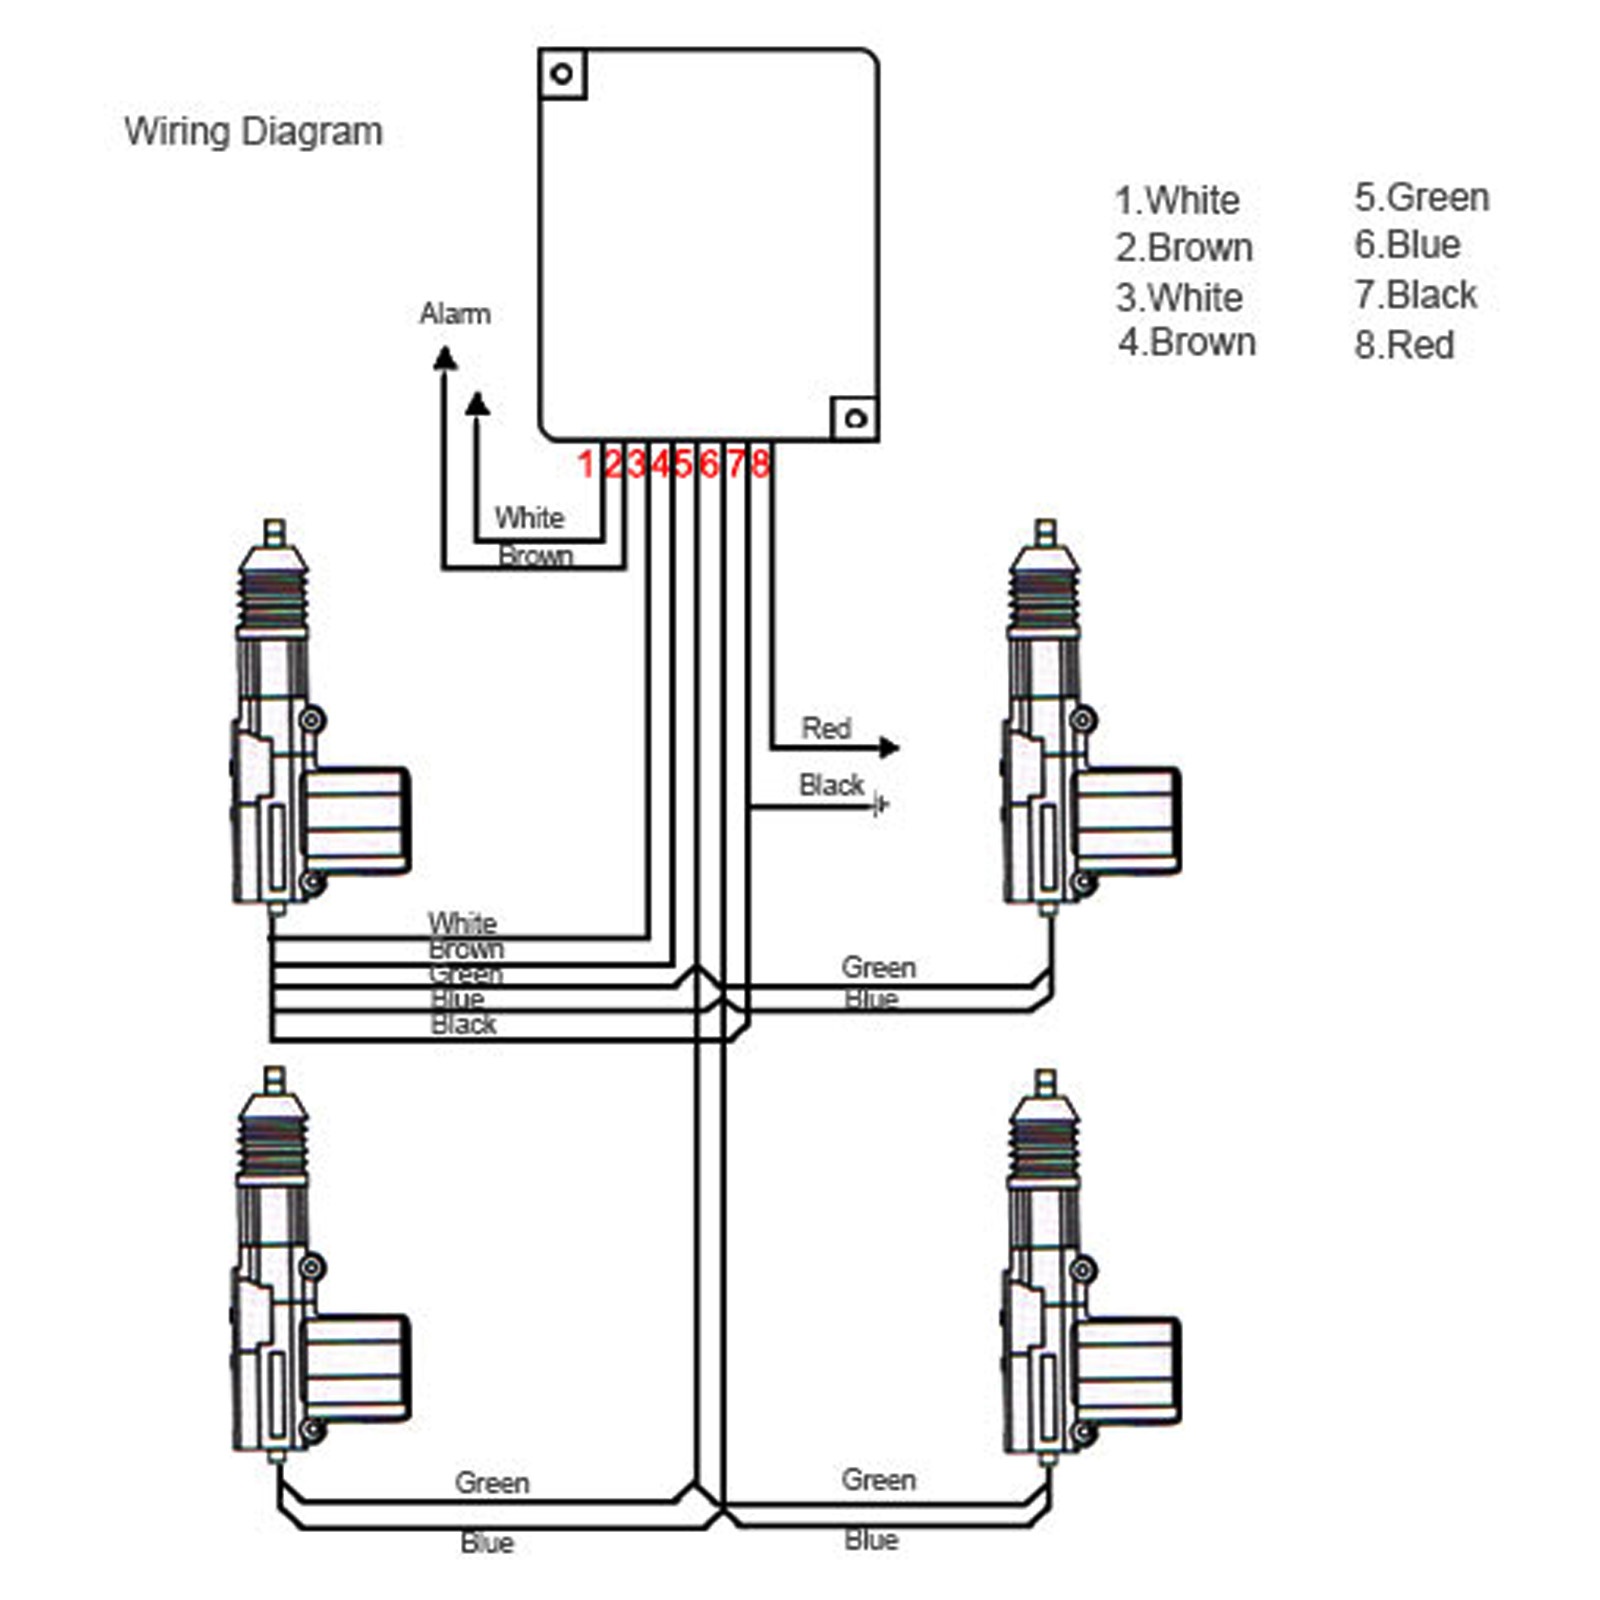 remote central locking kit wiring diagram with 322165223535 on 220617796059 together with Cyclops Immobiliser Wiring Diagram besides Dei Remote Start Wiring Diagrams as well Forum posts in addition Electrolux Wiring Diagram.